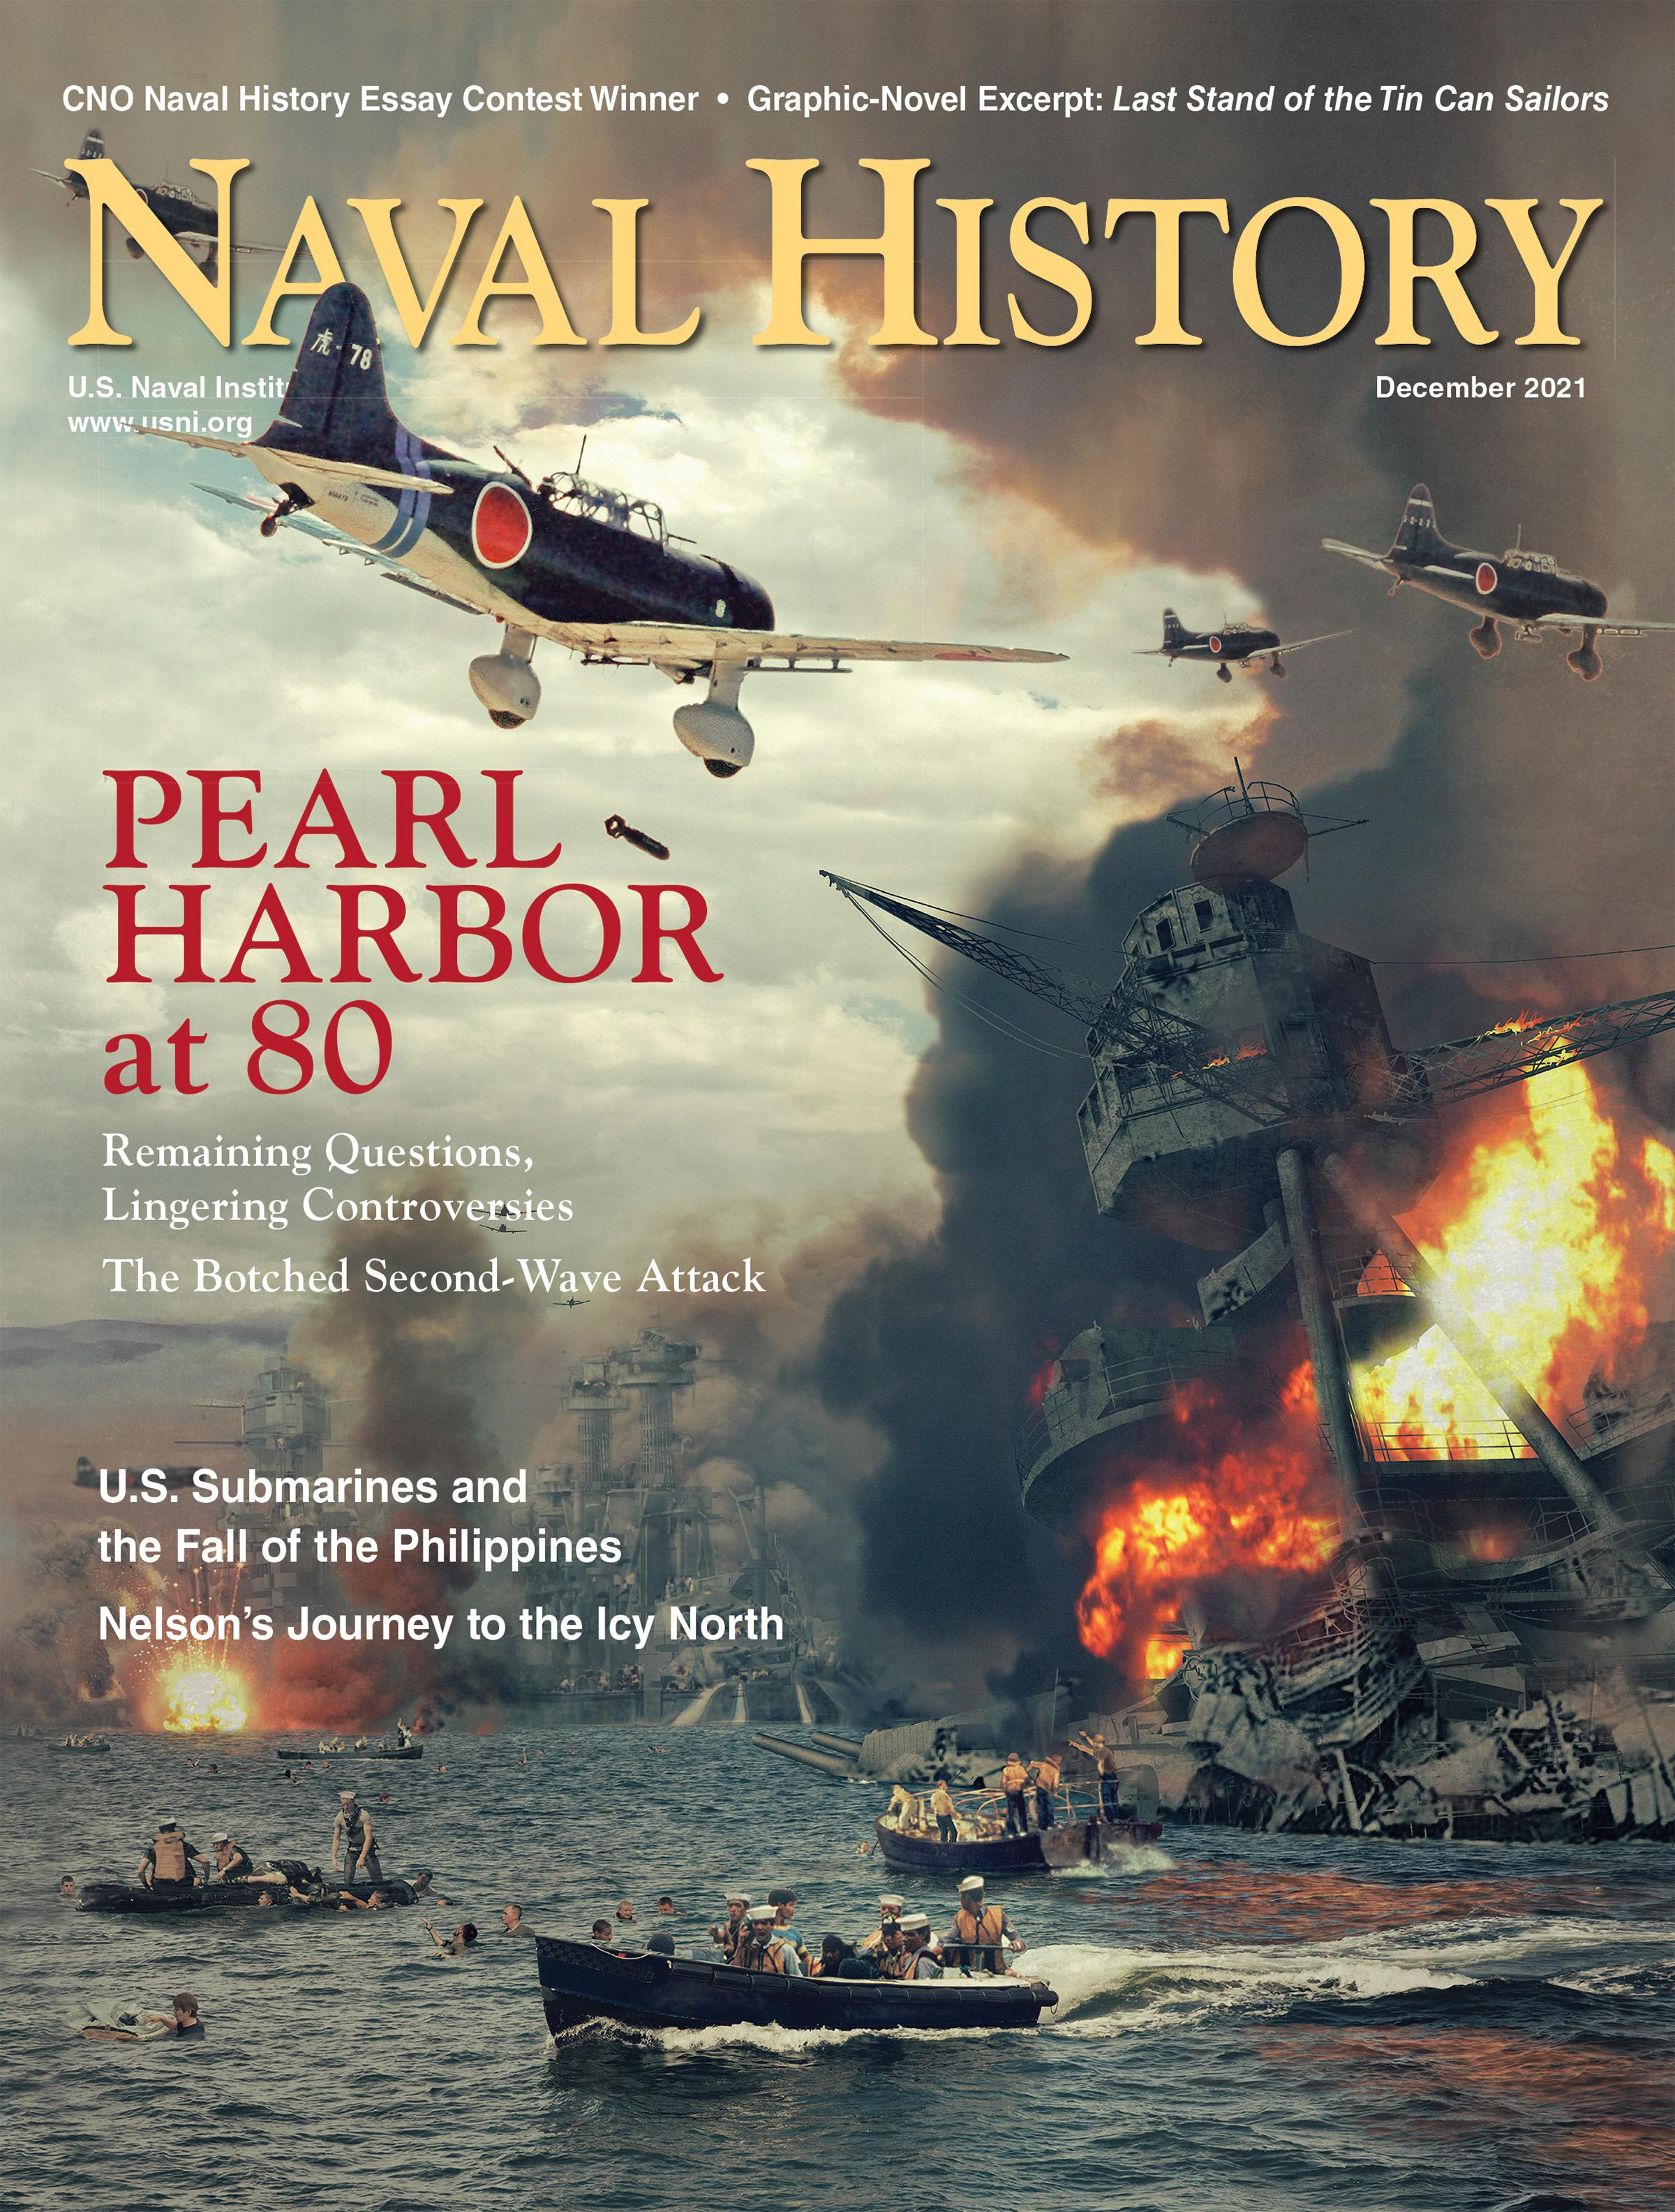 Naval History Magazine Cover